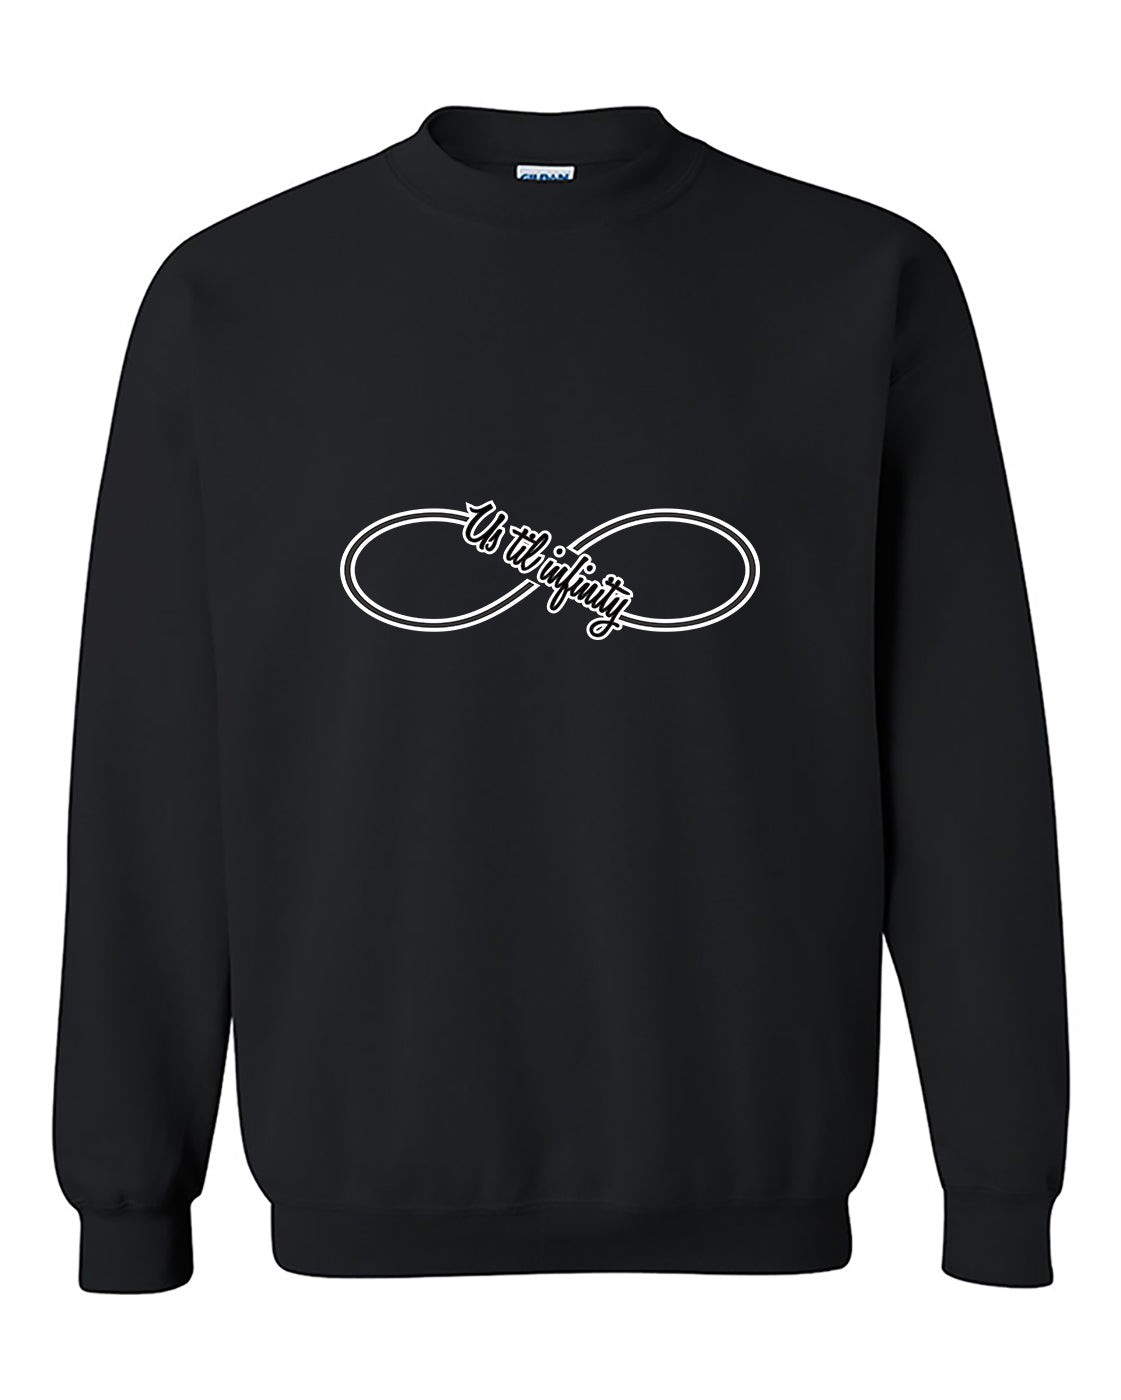 Us till Infinity love Couples Valentine's Day Gift Crewneck Sweater